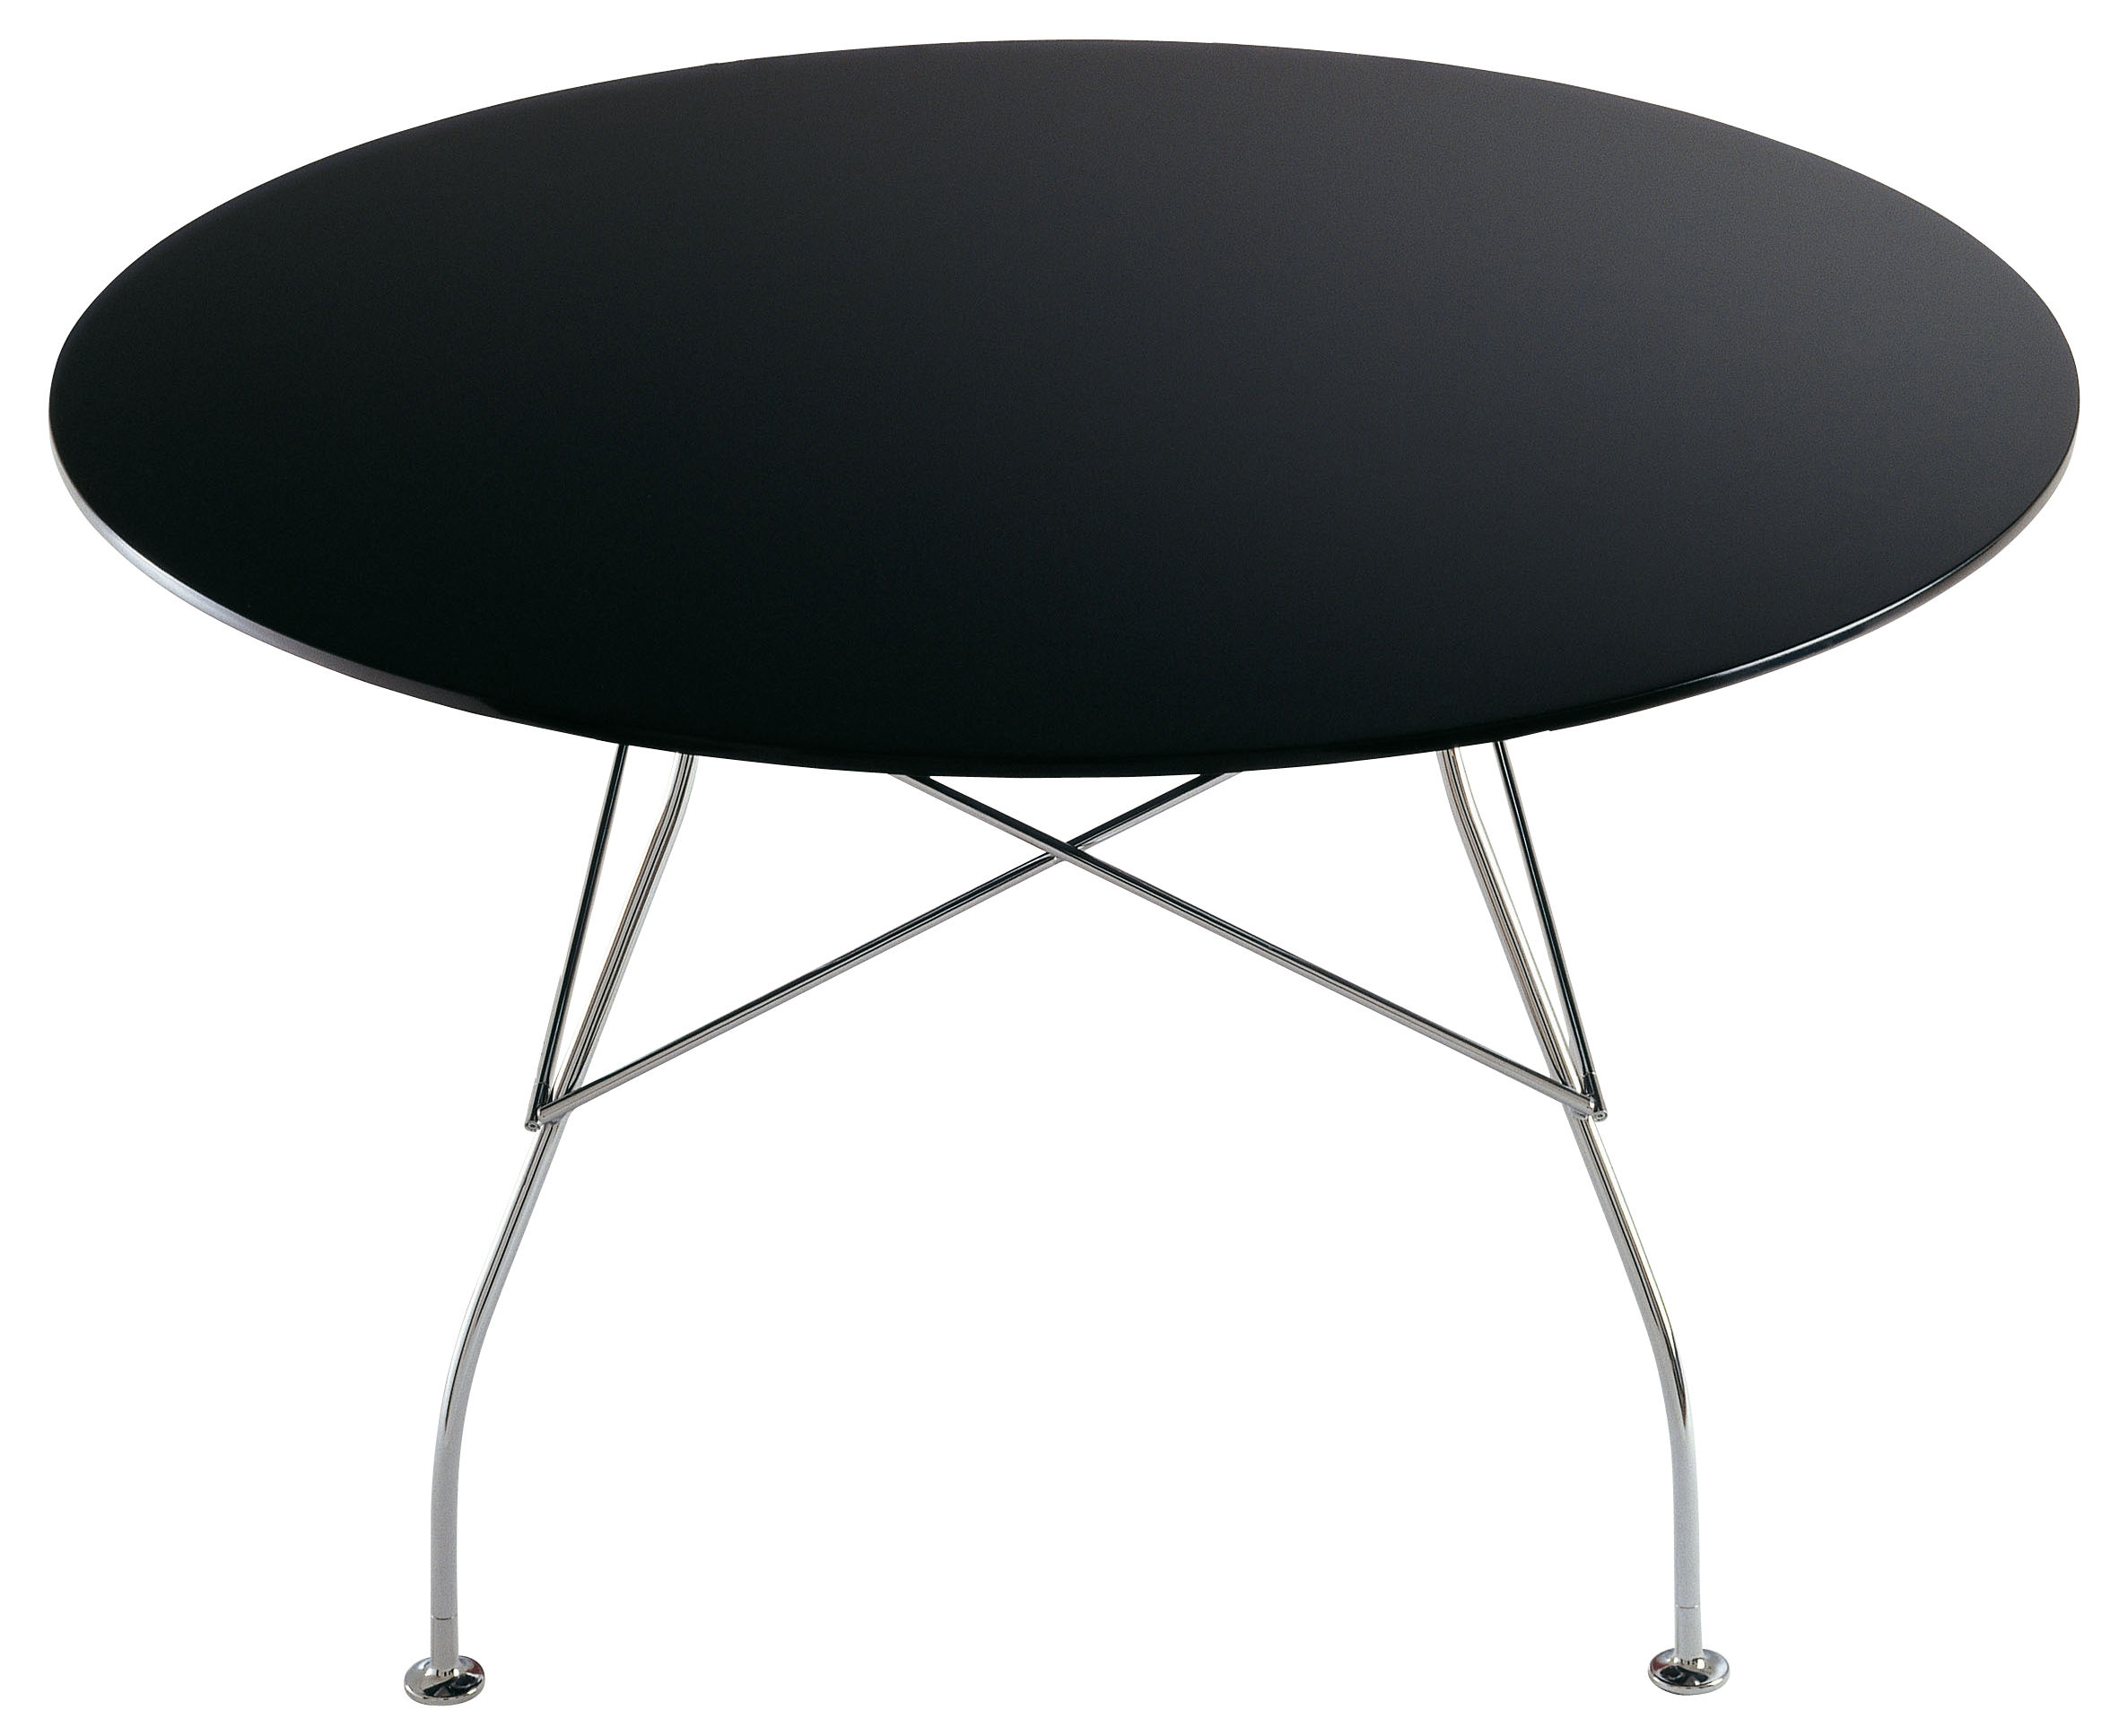 Furniture - Dining Tables - Glossy Round table by Kartell - Black - Chromed steel, Lacquered MDF